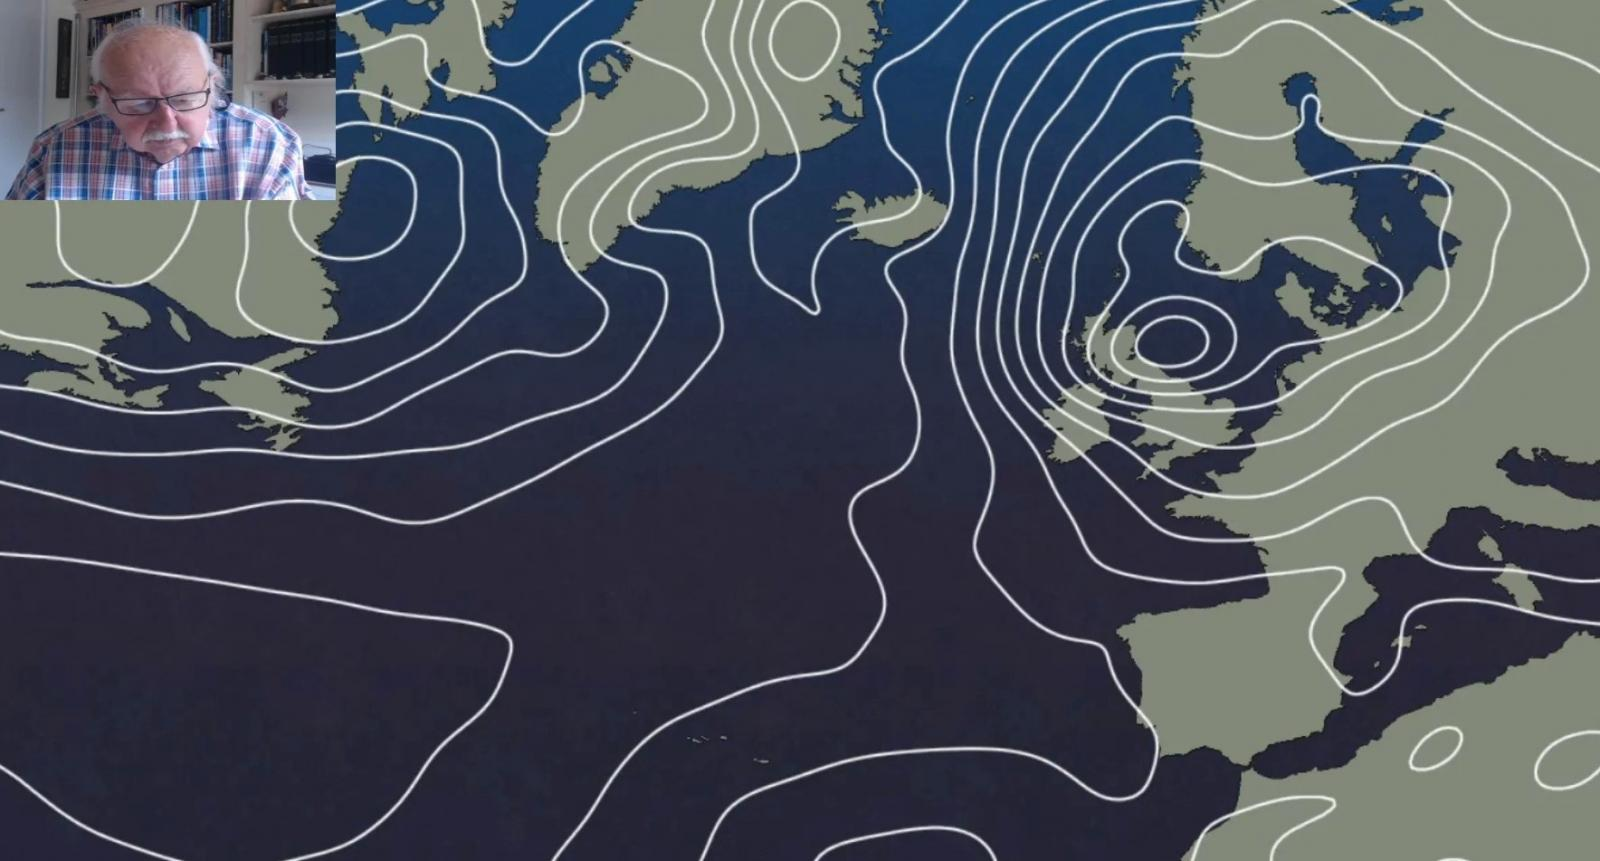 MIchael Fish: More like Autumn this weekend but warming up next week